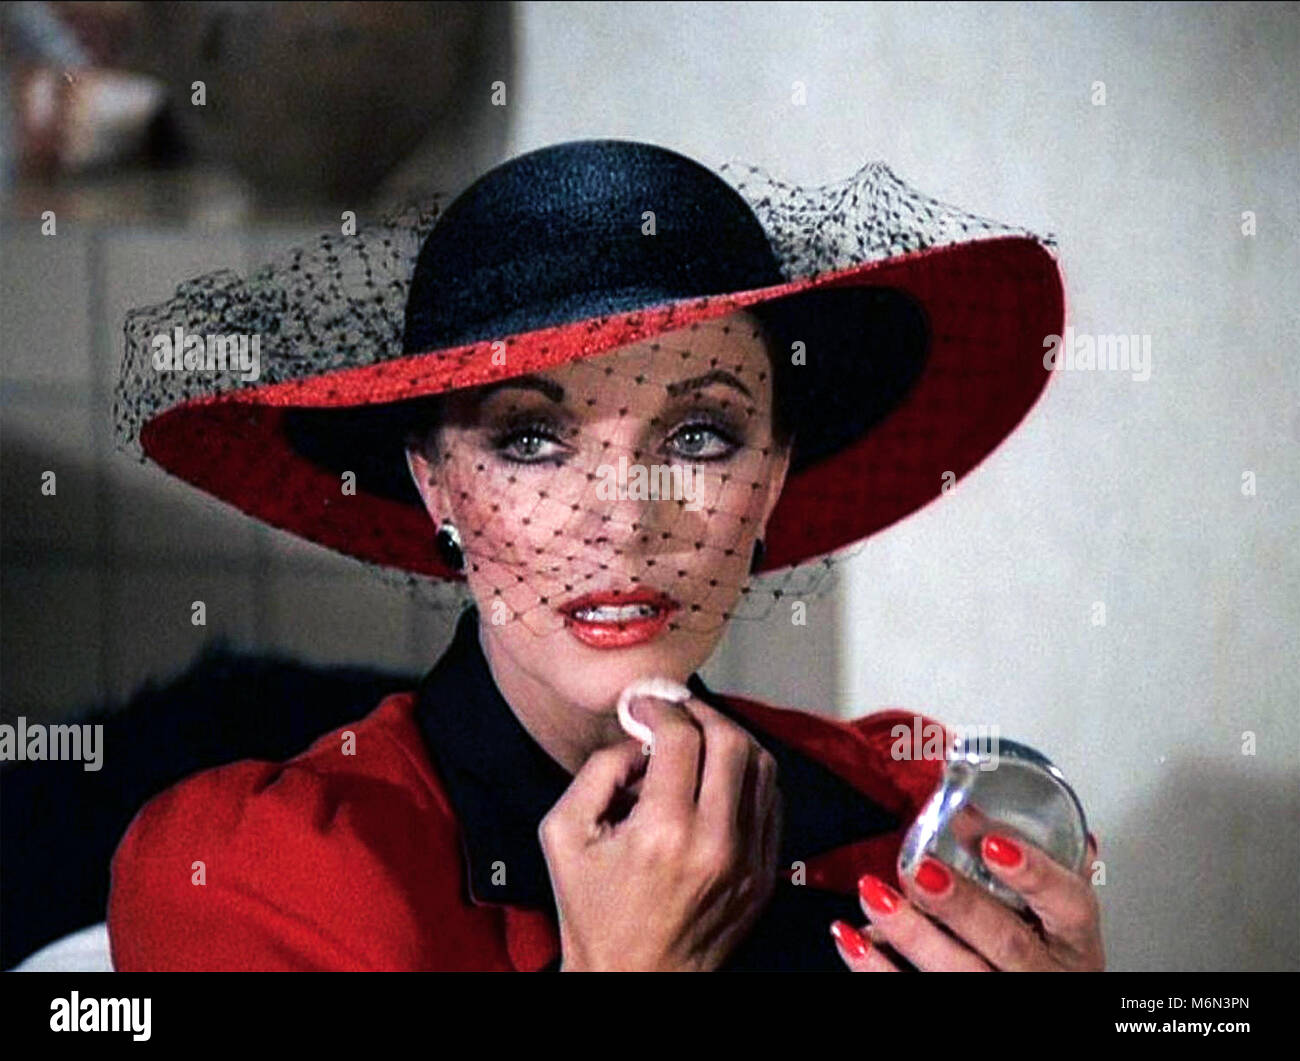 DYNASTY CBS TV series 1981-1989 with Joan Collins as Alexis Carrington - Stock Image